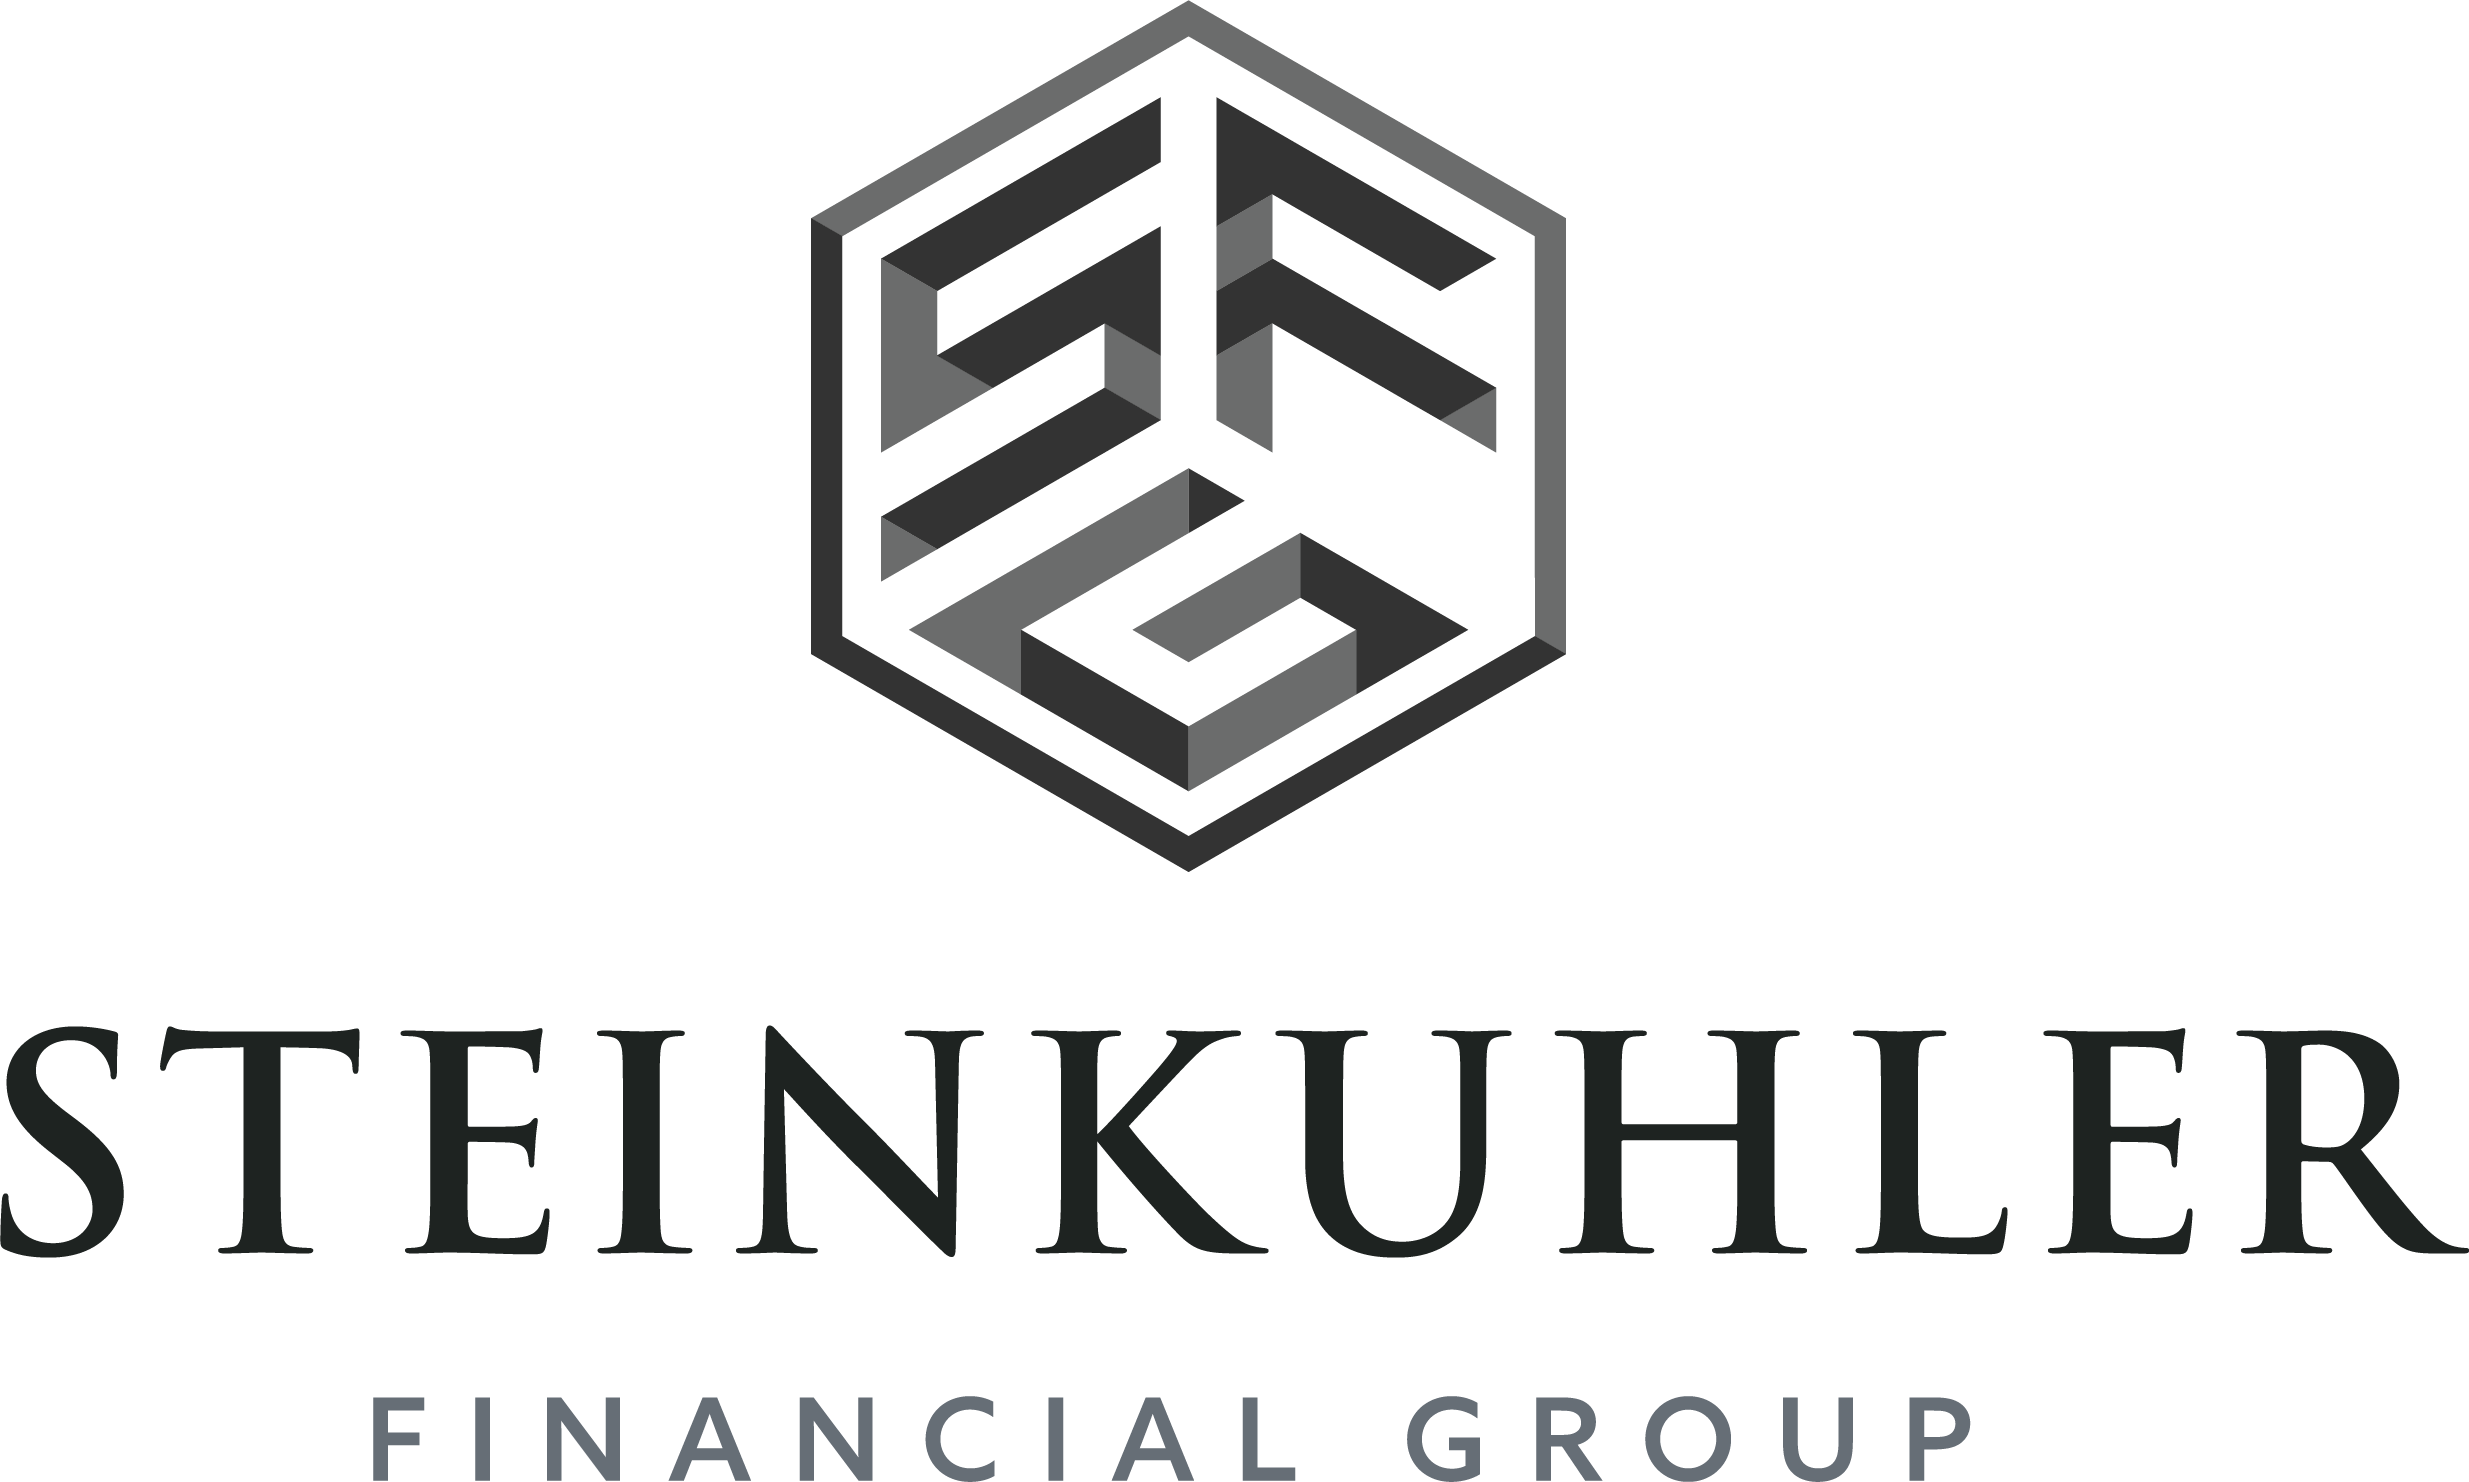 Steinkuhler Financial Group